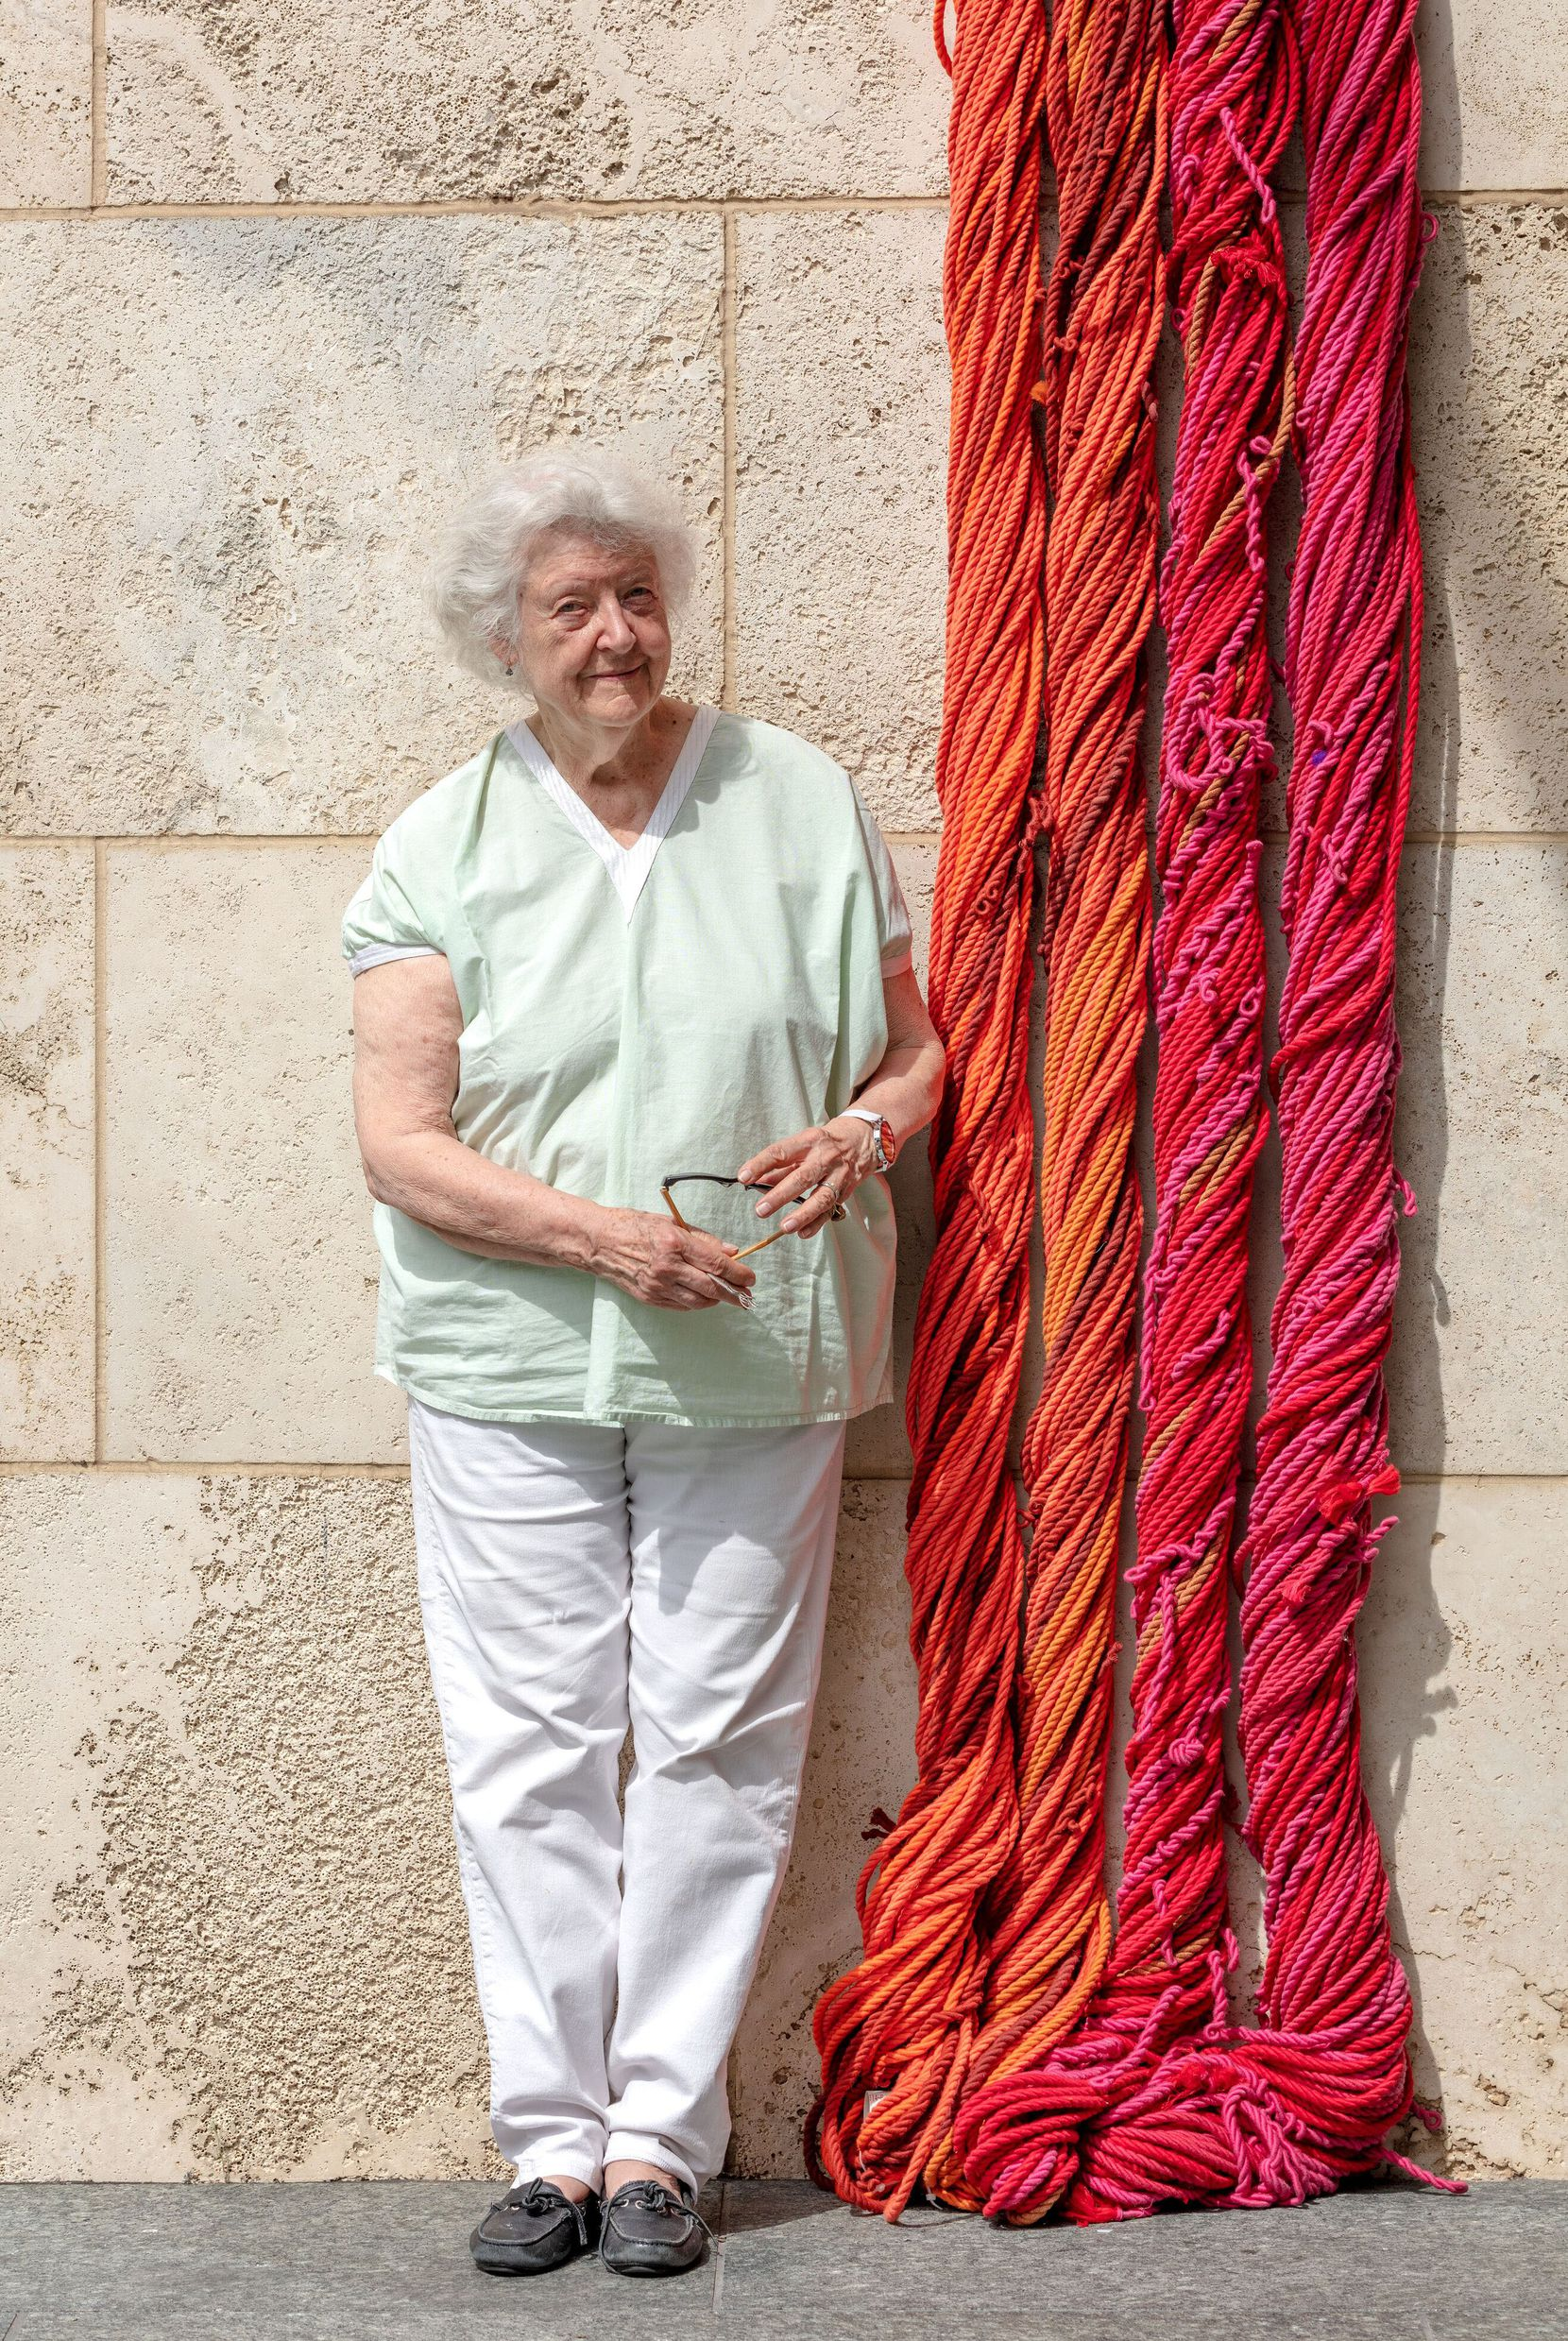 """Artist Sheila Hicks poses with a part of her """"Sheila Hicks: Seize, Weave Space"""" 2019 installation, on view through Aug. 18 at the Nasher Sculpture Center in Dallas."""